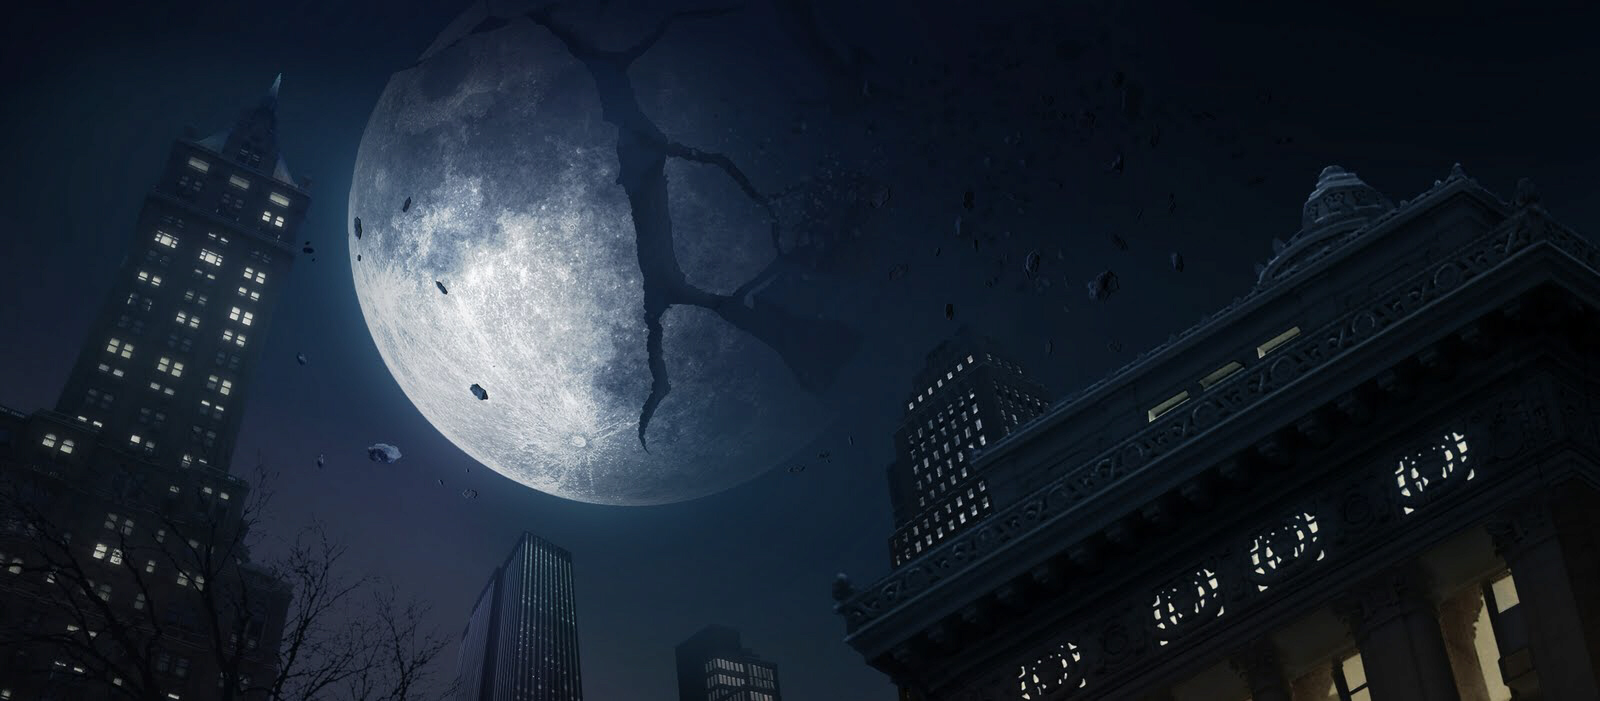 Moon partially destroyed by Russian weapons or asteroid impact